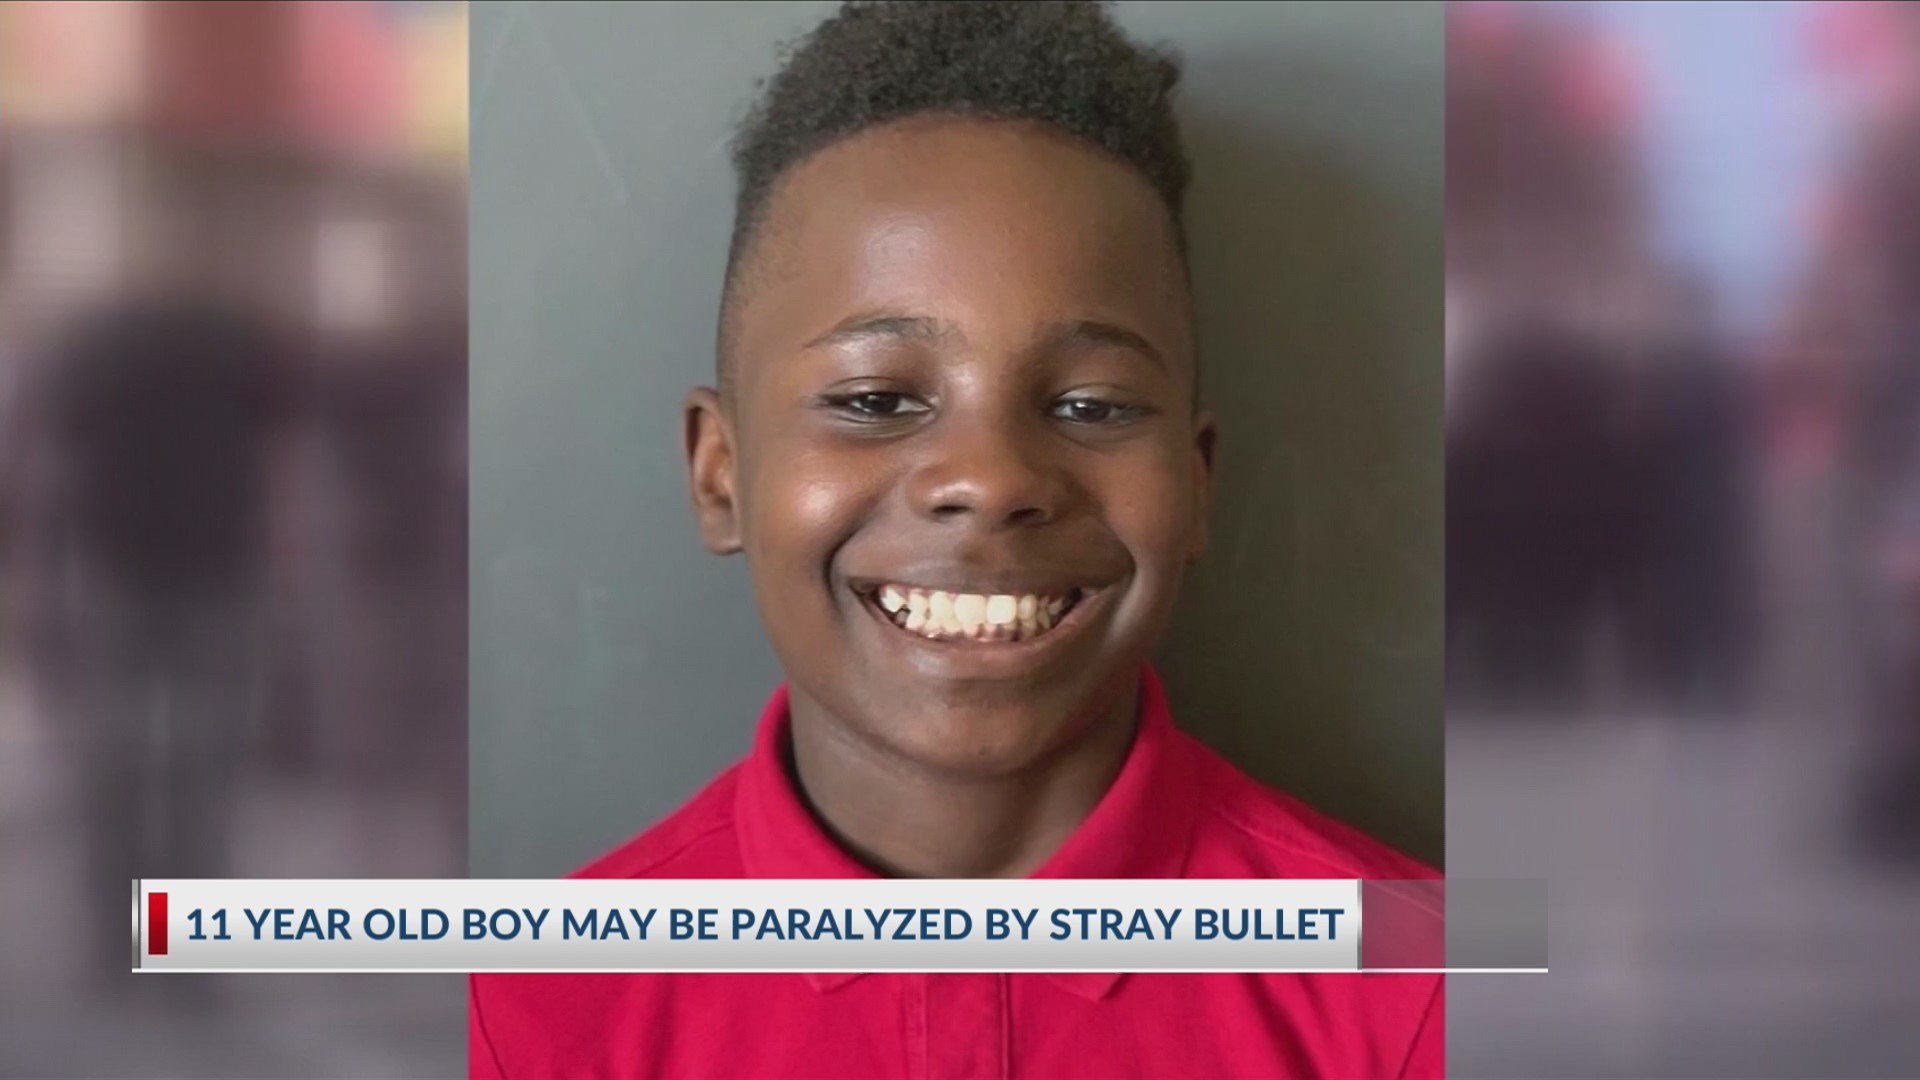 11_YEAR_OLD_PARALYZED_AFTER_BEING_STRUCK_0_20190625221809